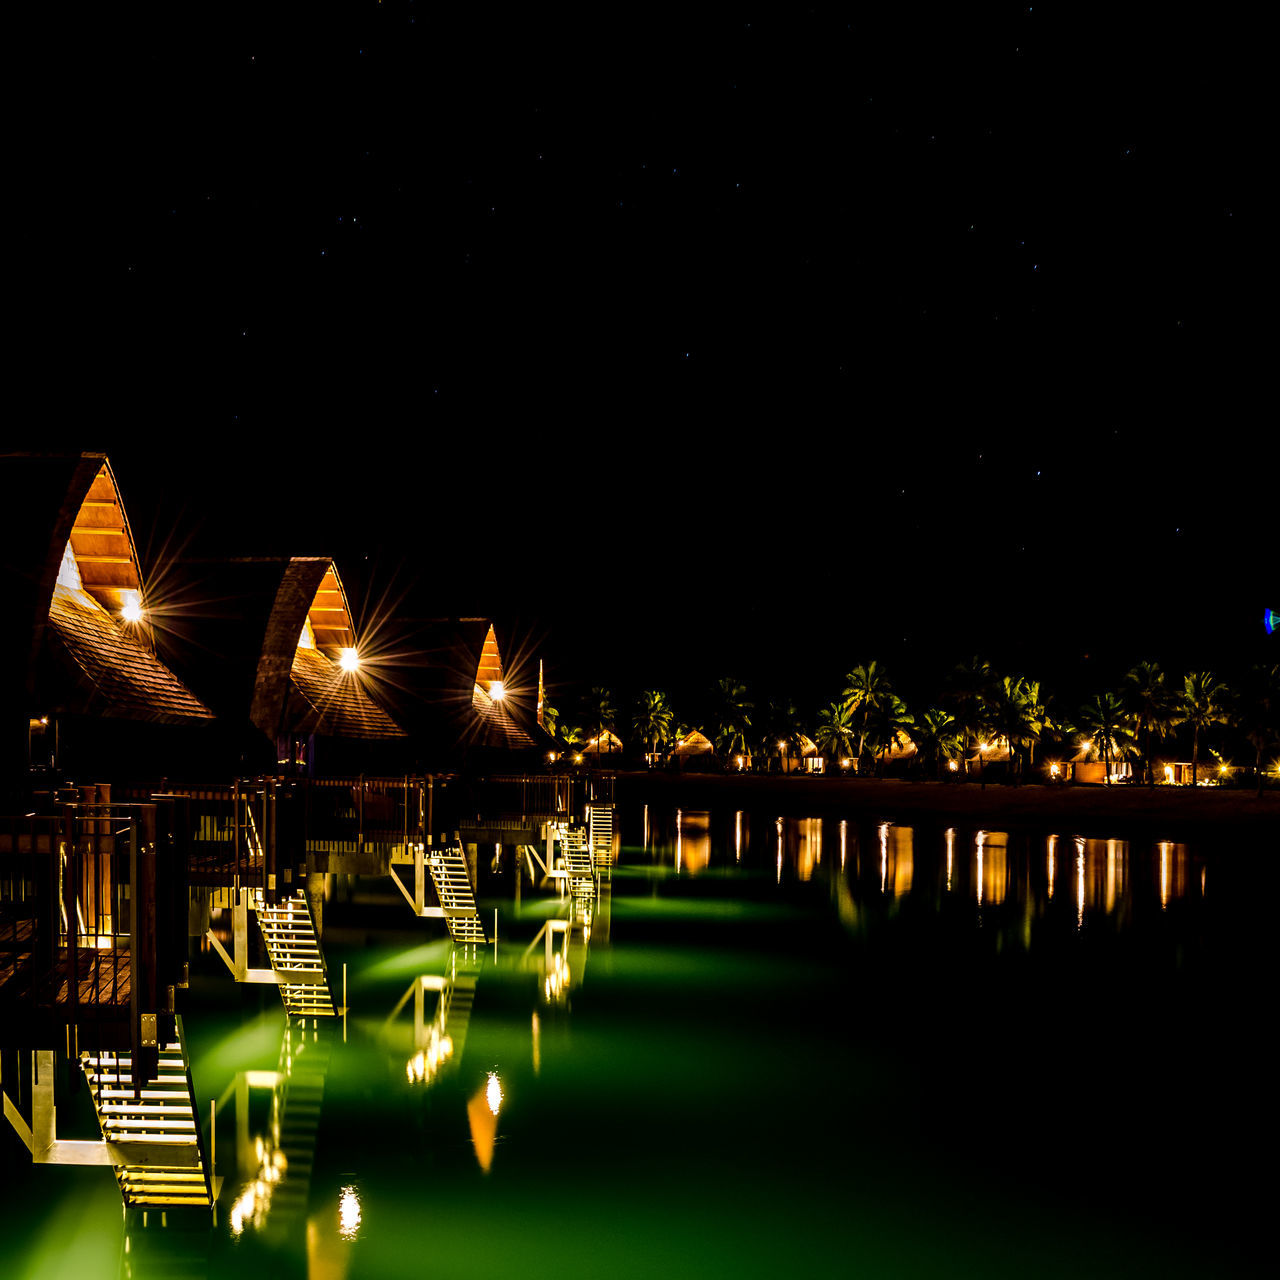 Lagoon at night Architecture Building Exterior Built Structure Bure Clear Sky Fiji Illuminated Lagoon Lagoon Water Night No People Outdoors Sky Water Waterfront The Great Outdoors - 2017 EyeEm Awards